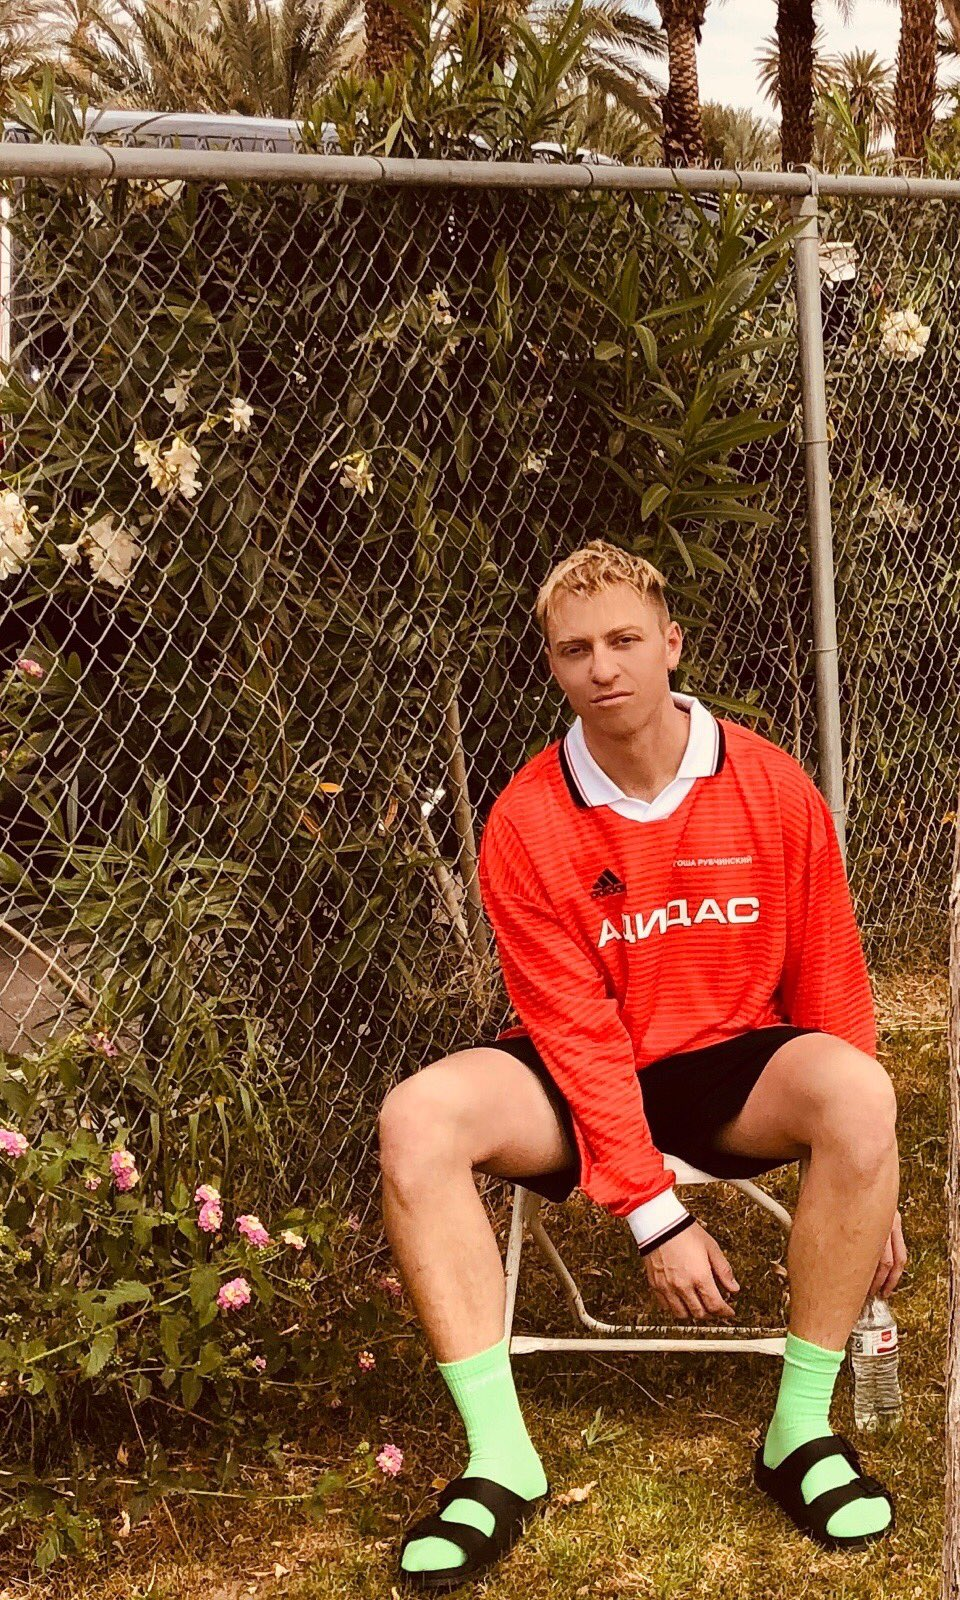 .@thedrumsforever are taking over our Snapchat rn! Follow along �� @coachella �� Antoine Dykmans https://t.co/lpM2jHkpJ6